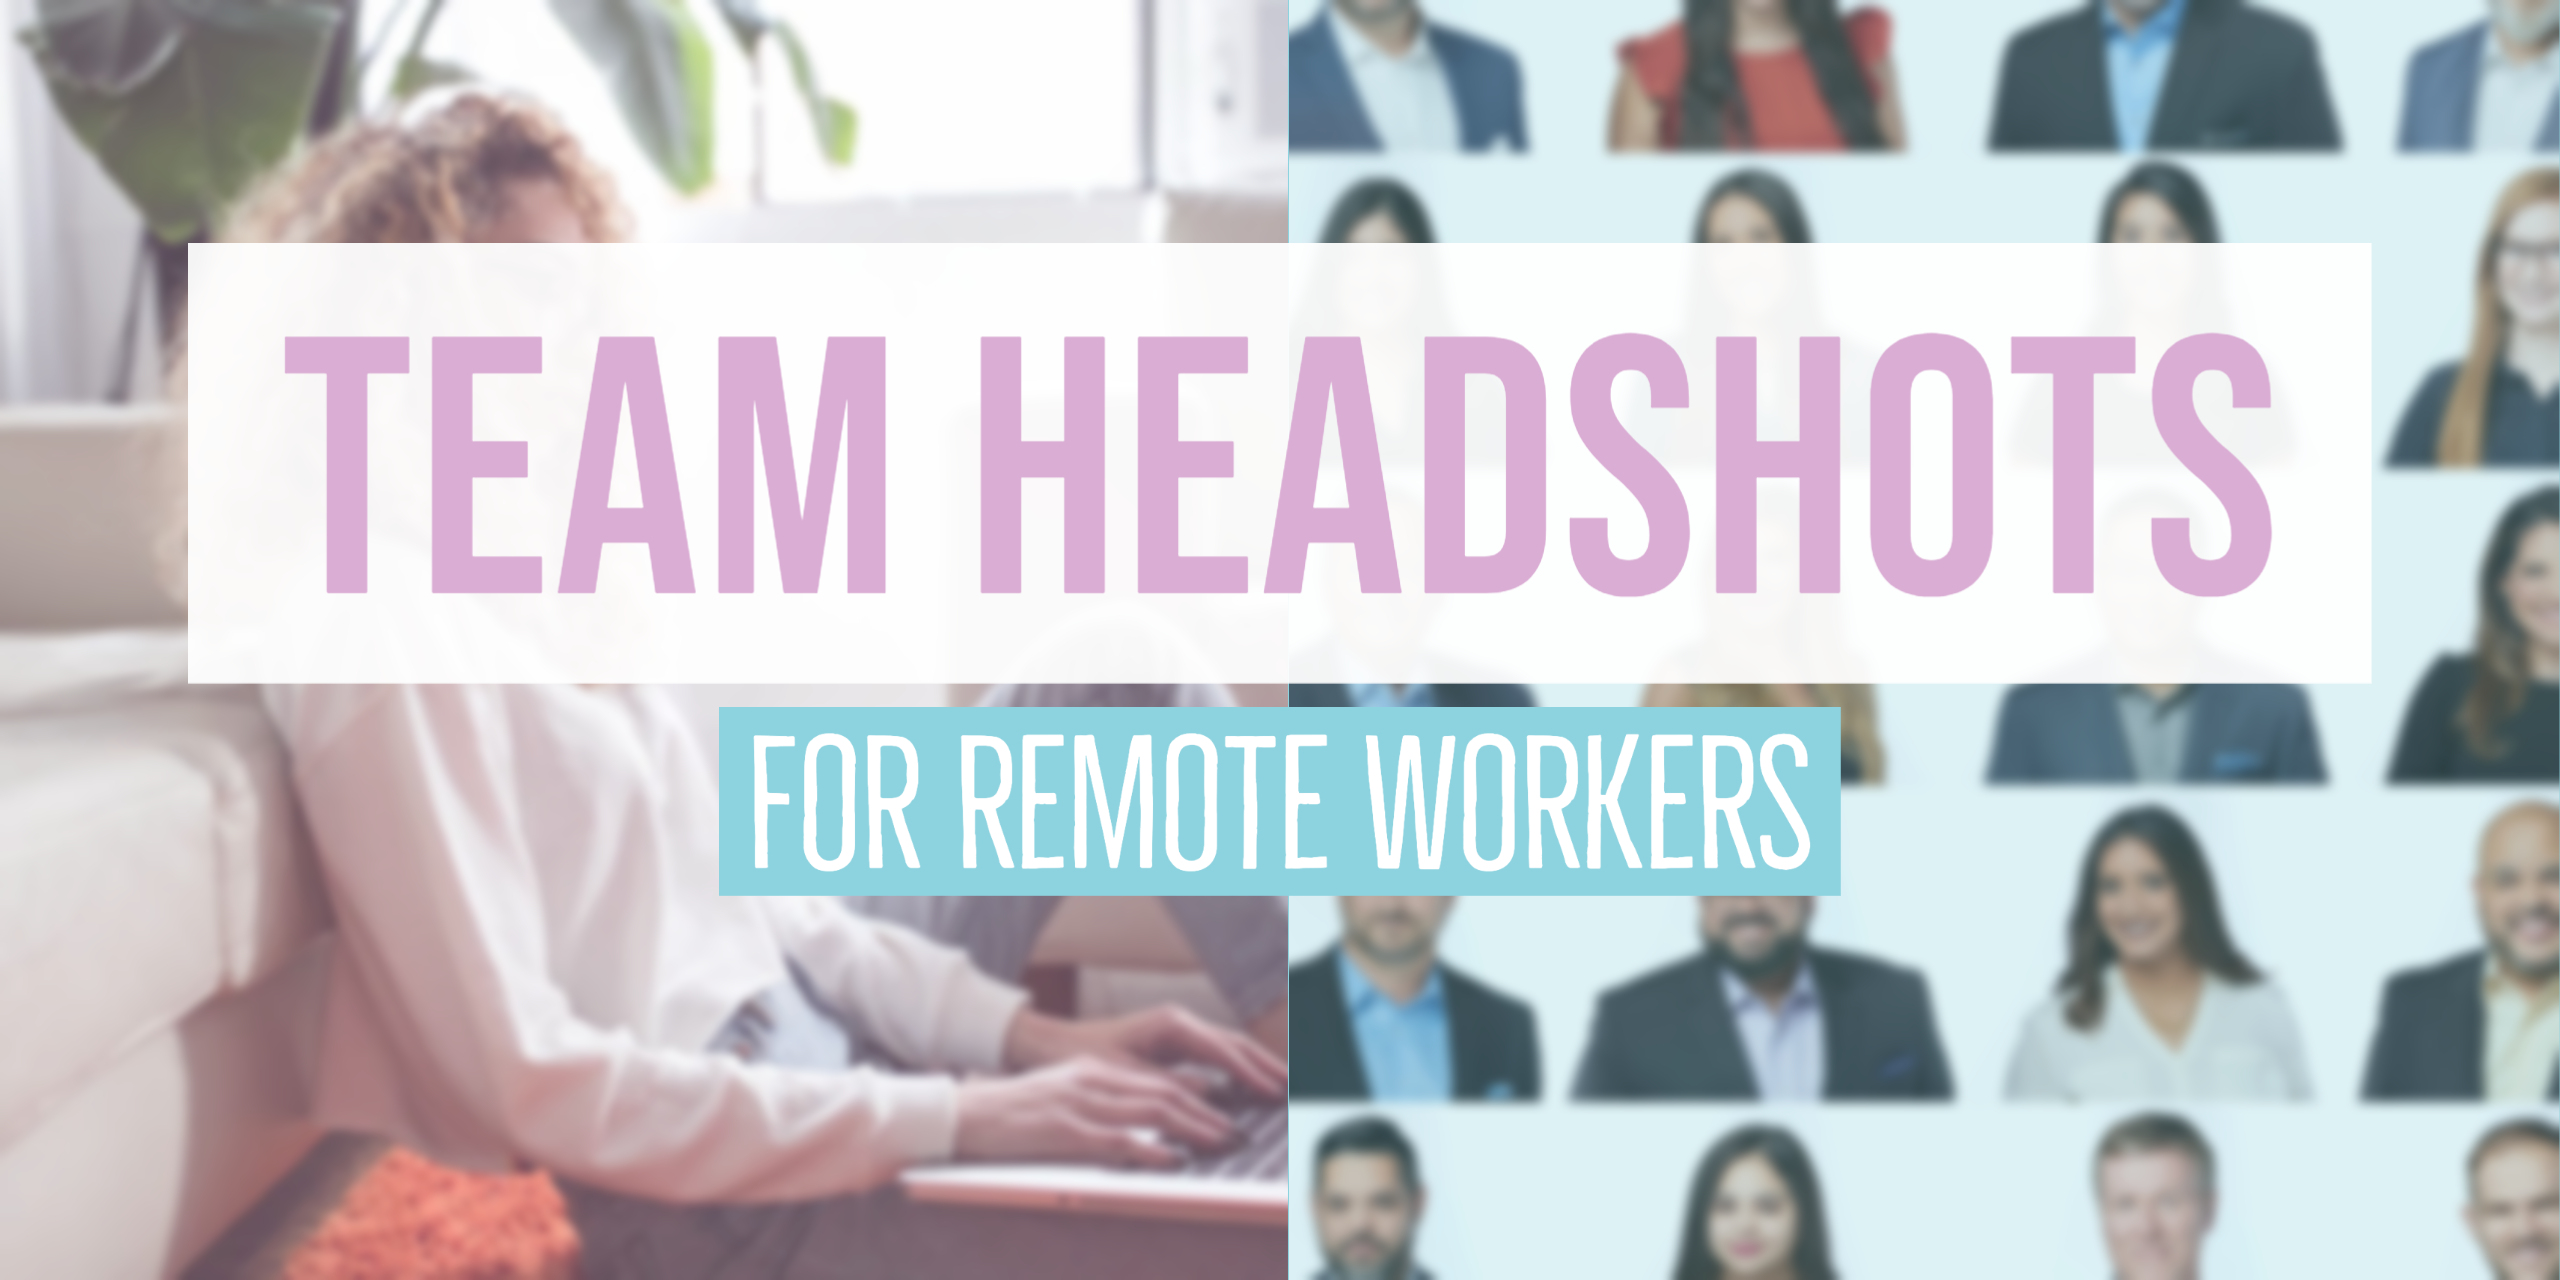 Team Headshots for Remote Workers